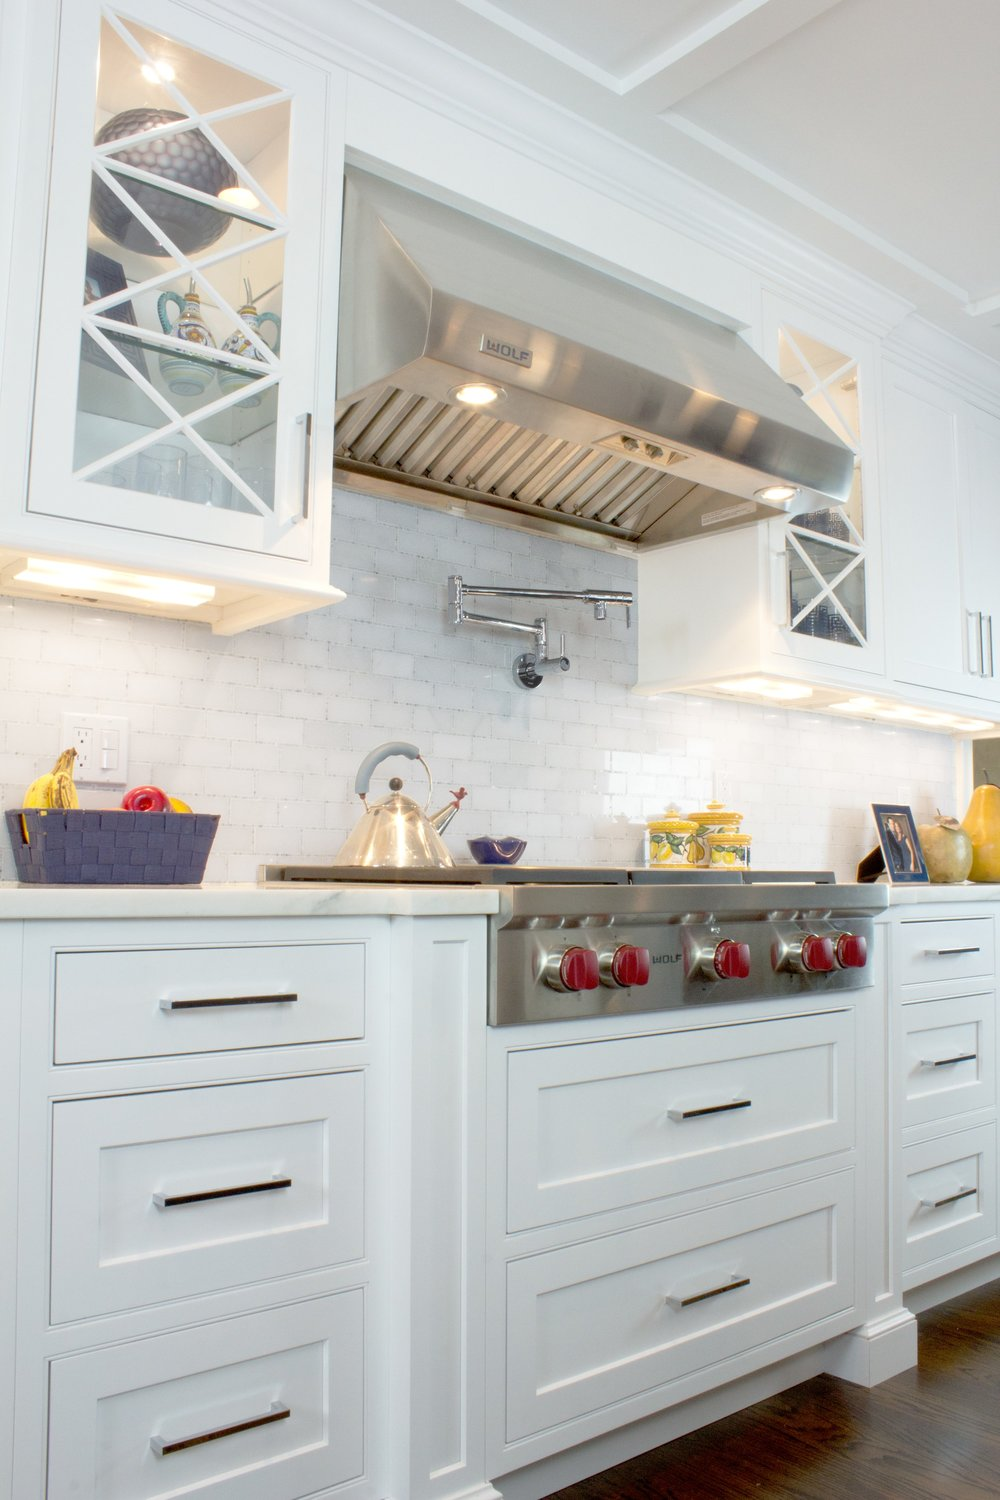 Transitional style kitchen with stainless range and range hood